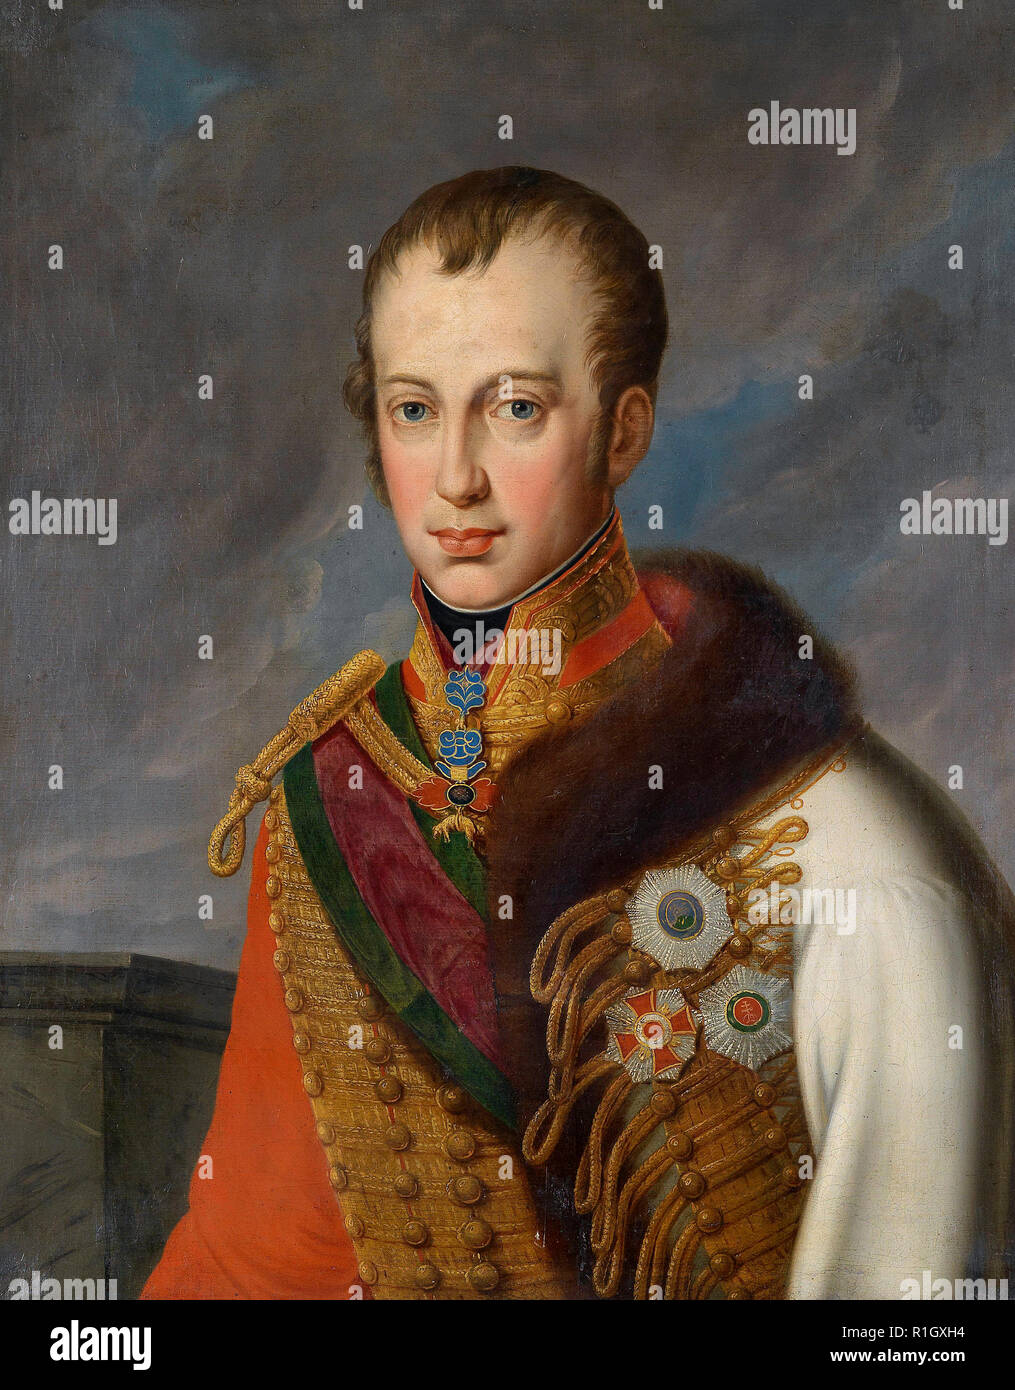 Emperor Ferdinand I of Austria in Hungarian adjustment with decorations, circa 1830 - Stock Image